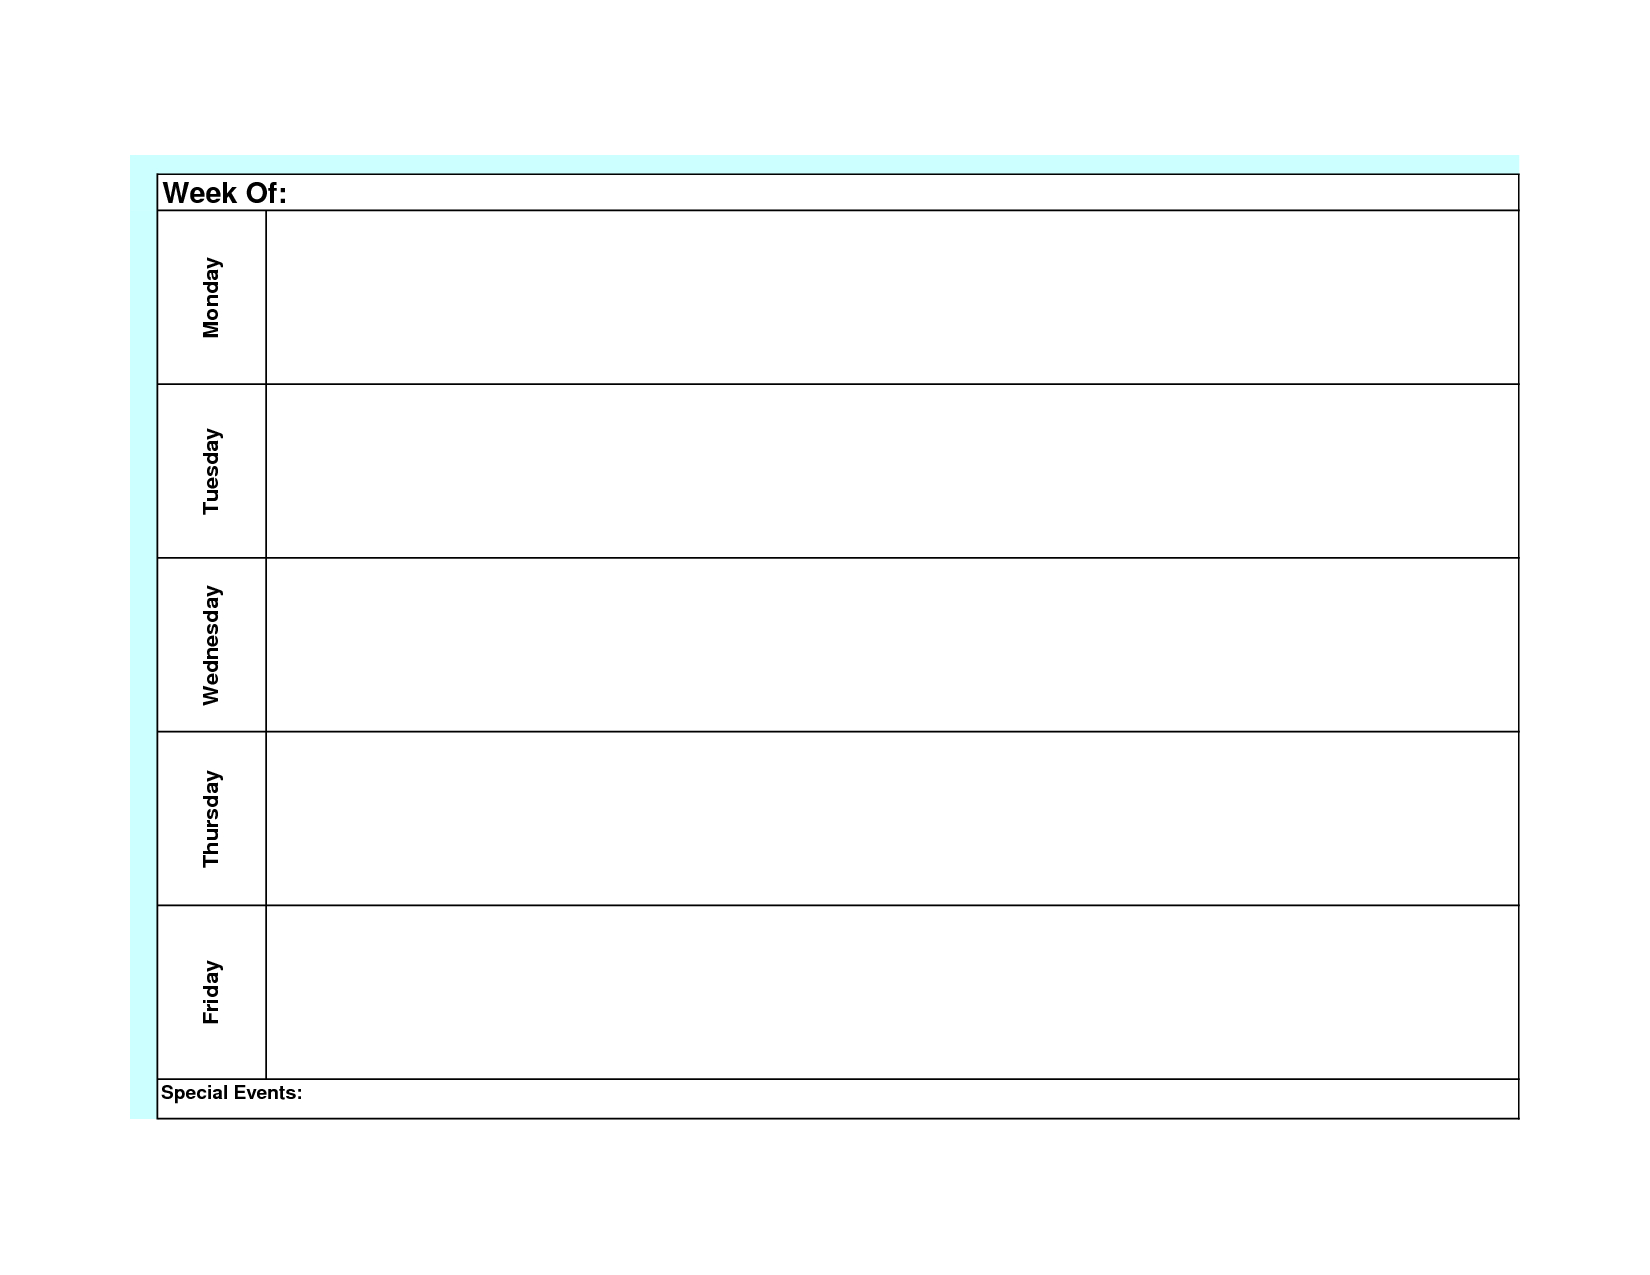 Blank Weekly Calendar Monday Through Friday Template Planner To | Smorad intended for Weekly Blank Calendar Monday Through Friday